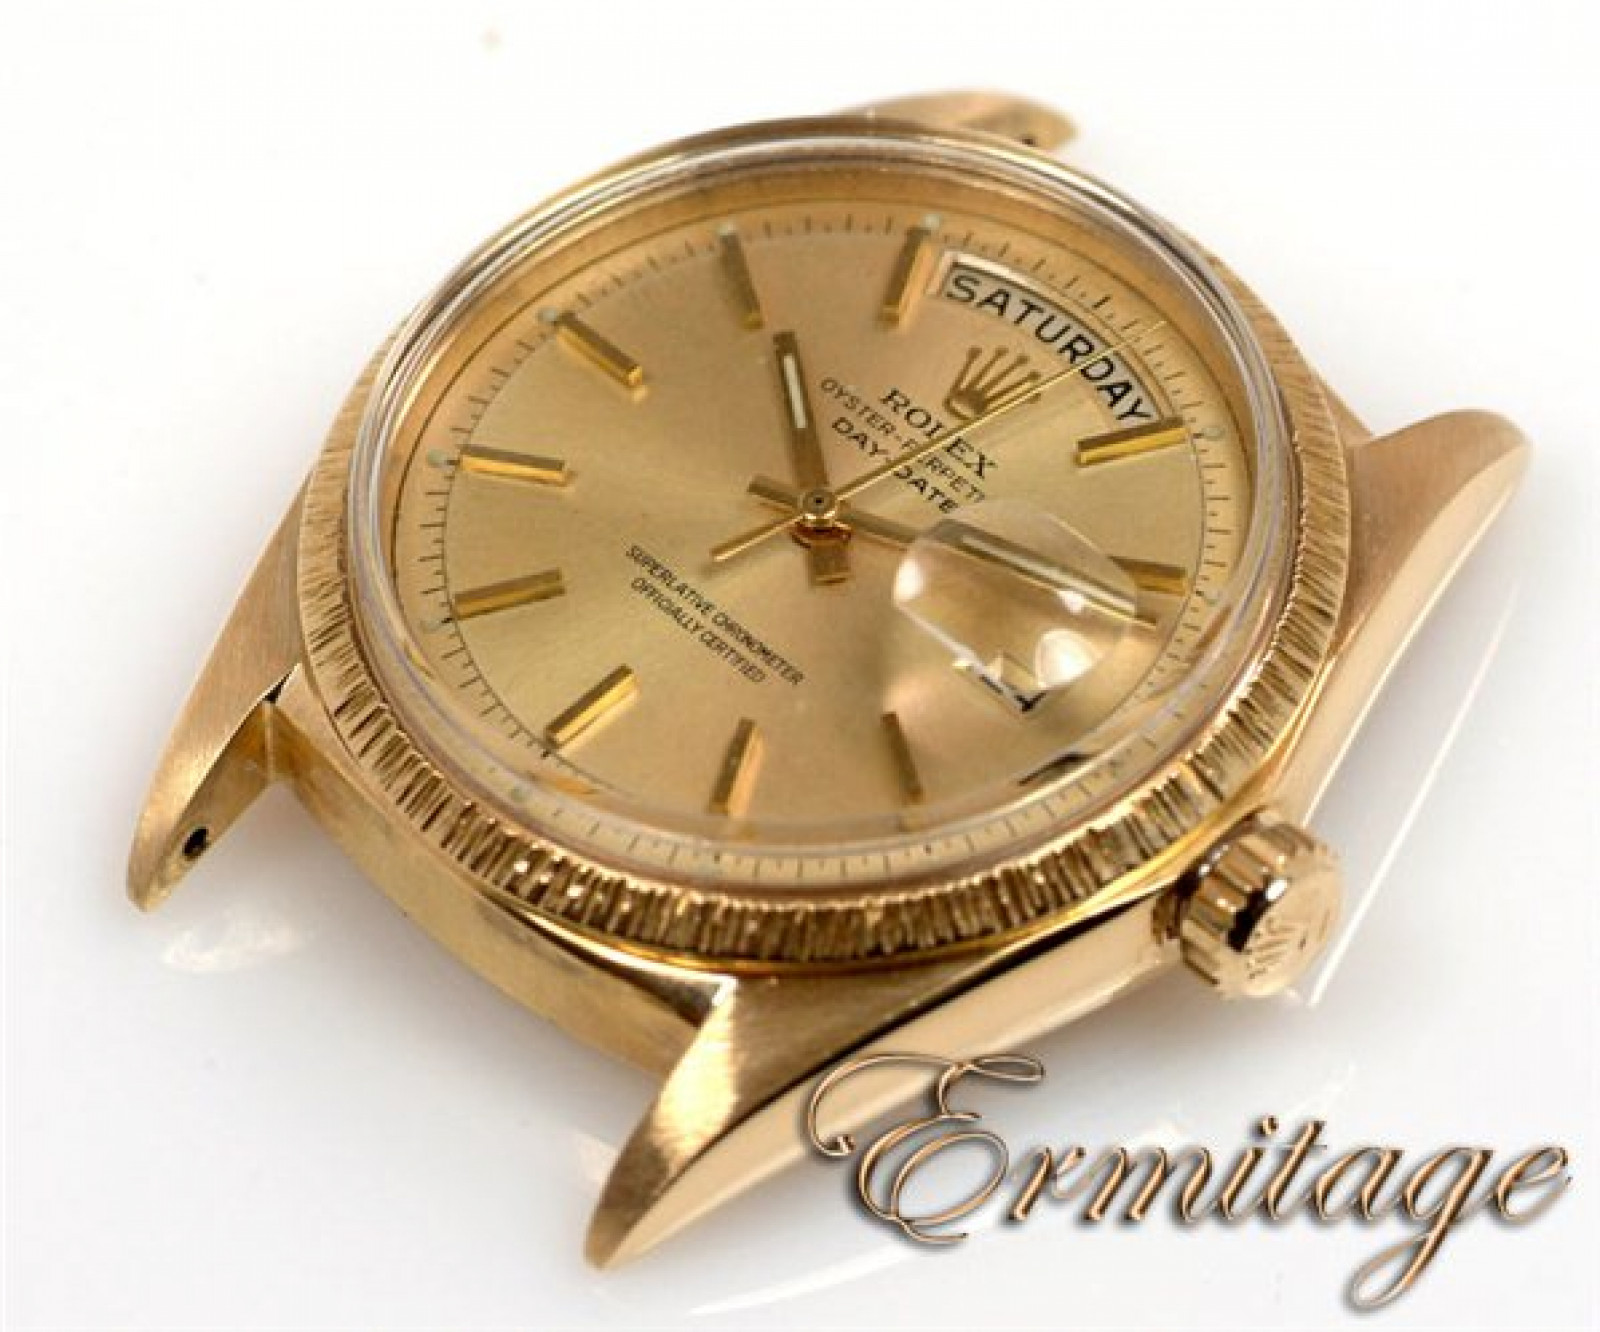 Vintage Rolex Day-Date 1807 Gold Year 1966 with Champagne Dial 1966